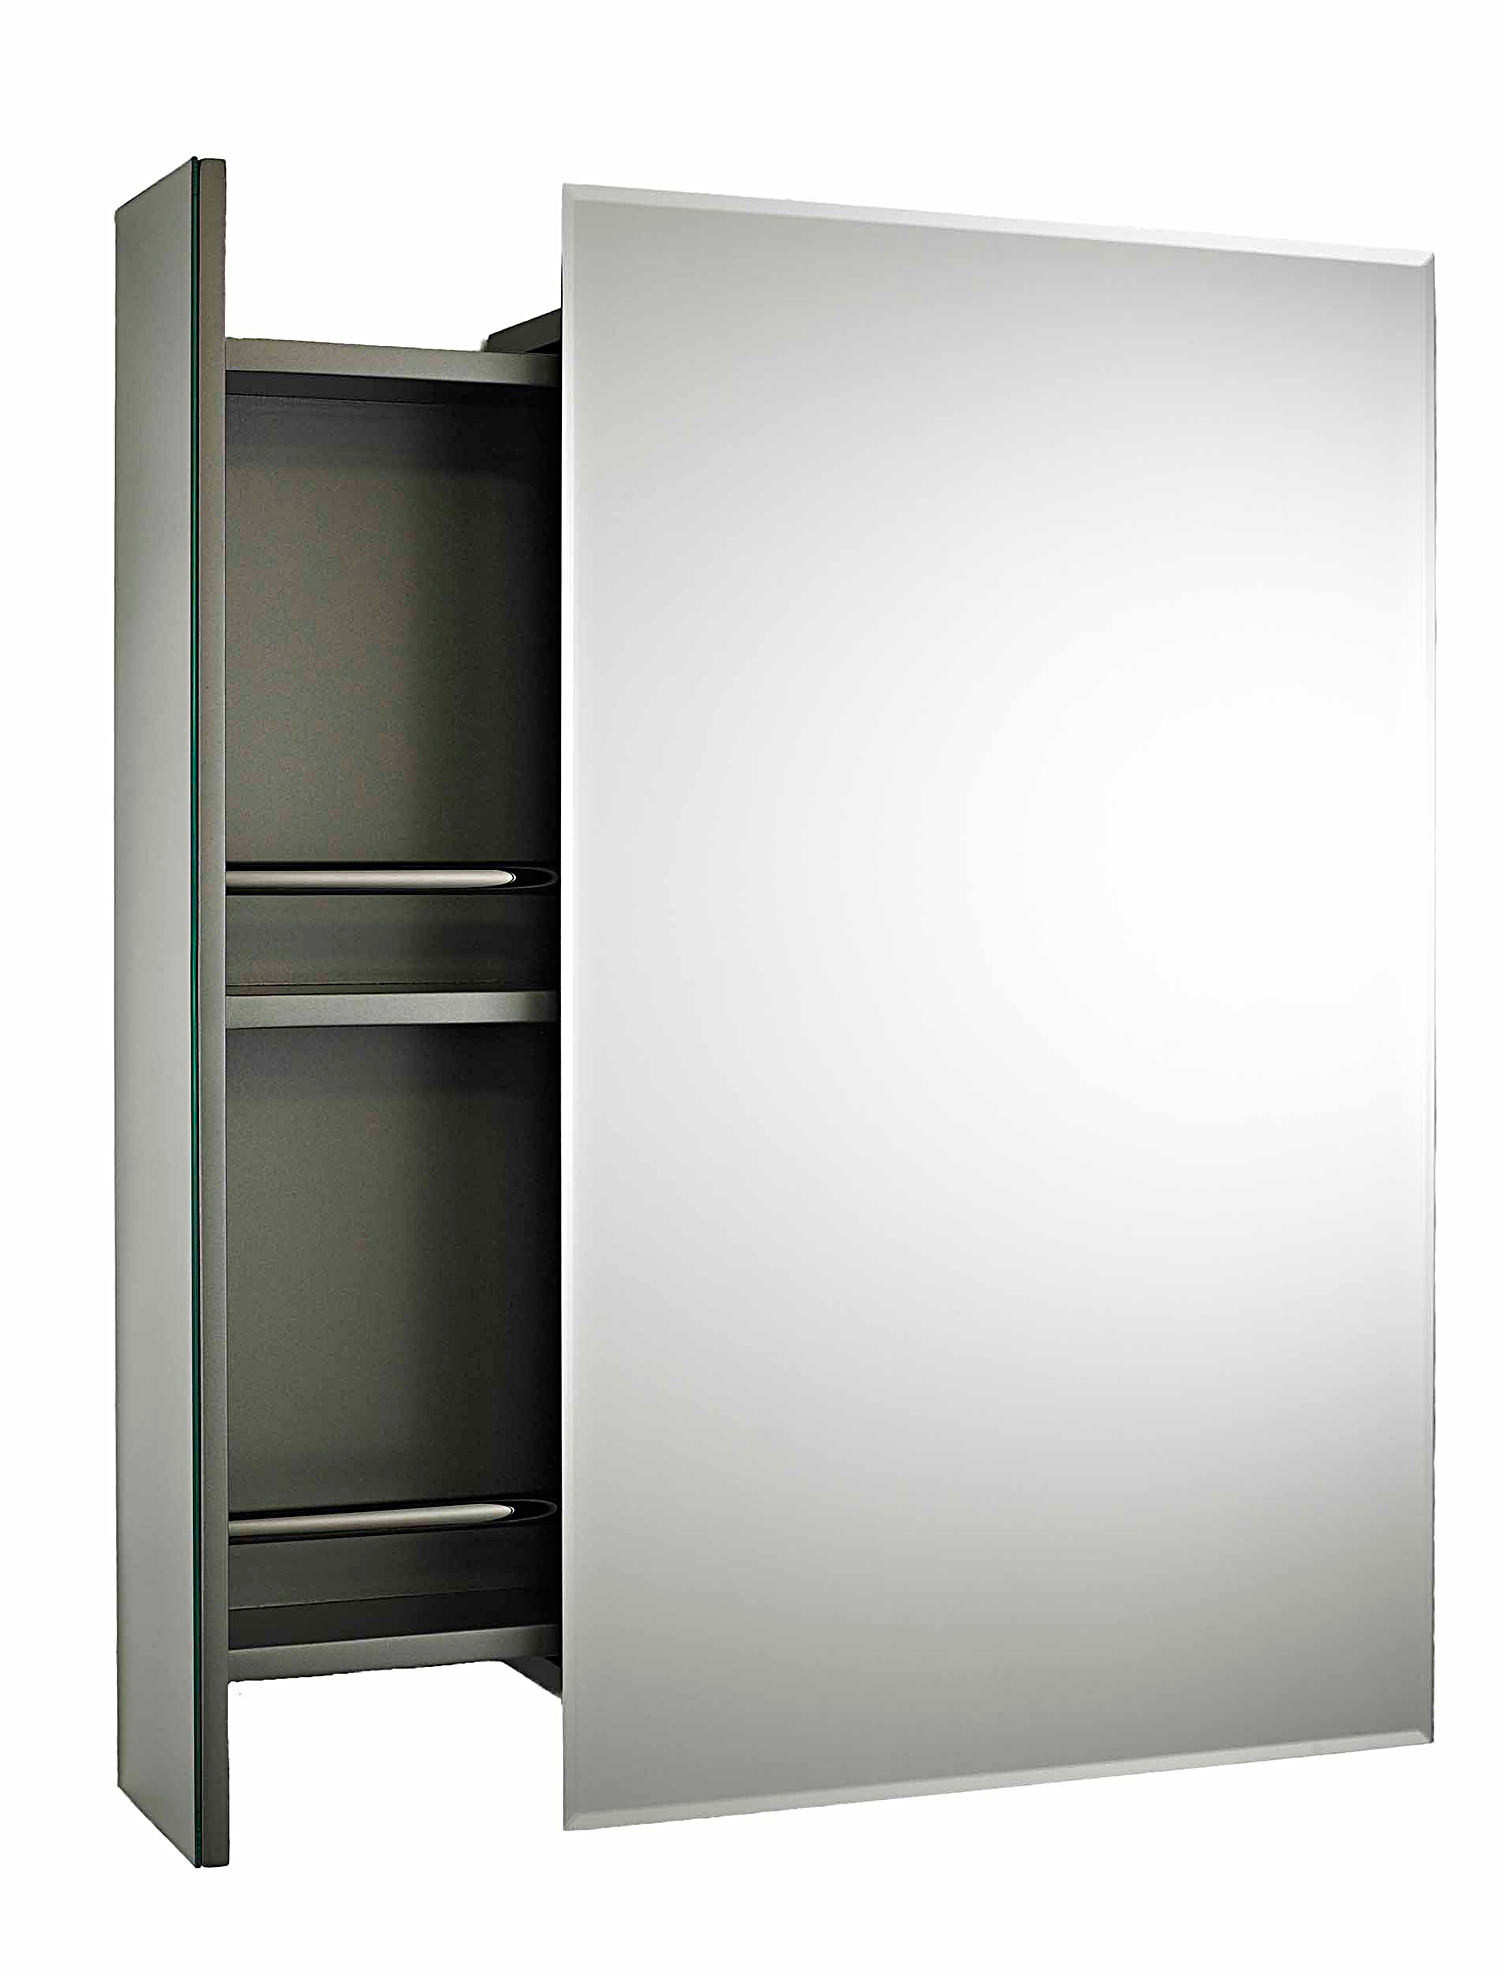 Lauren Intrigue Side Opening Mirrored Cabinet 460 X 750mm